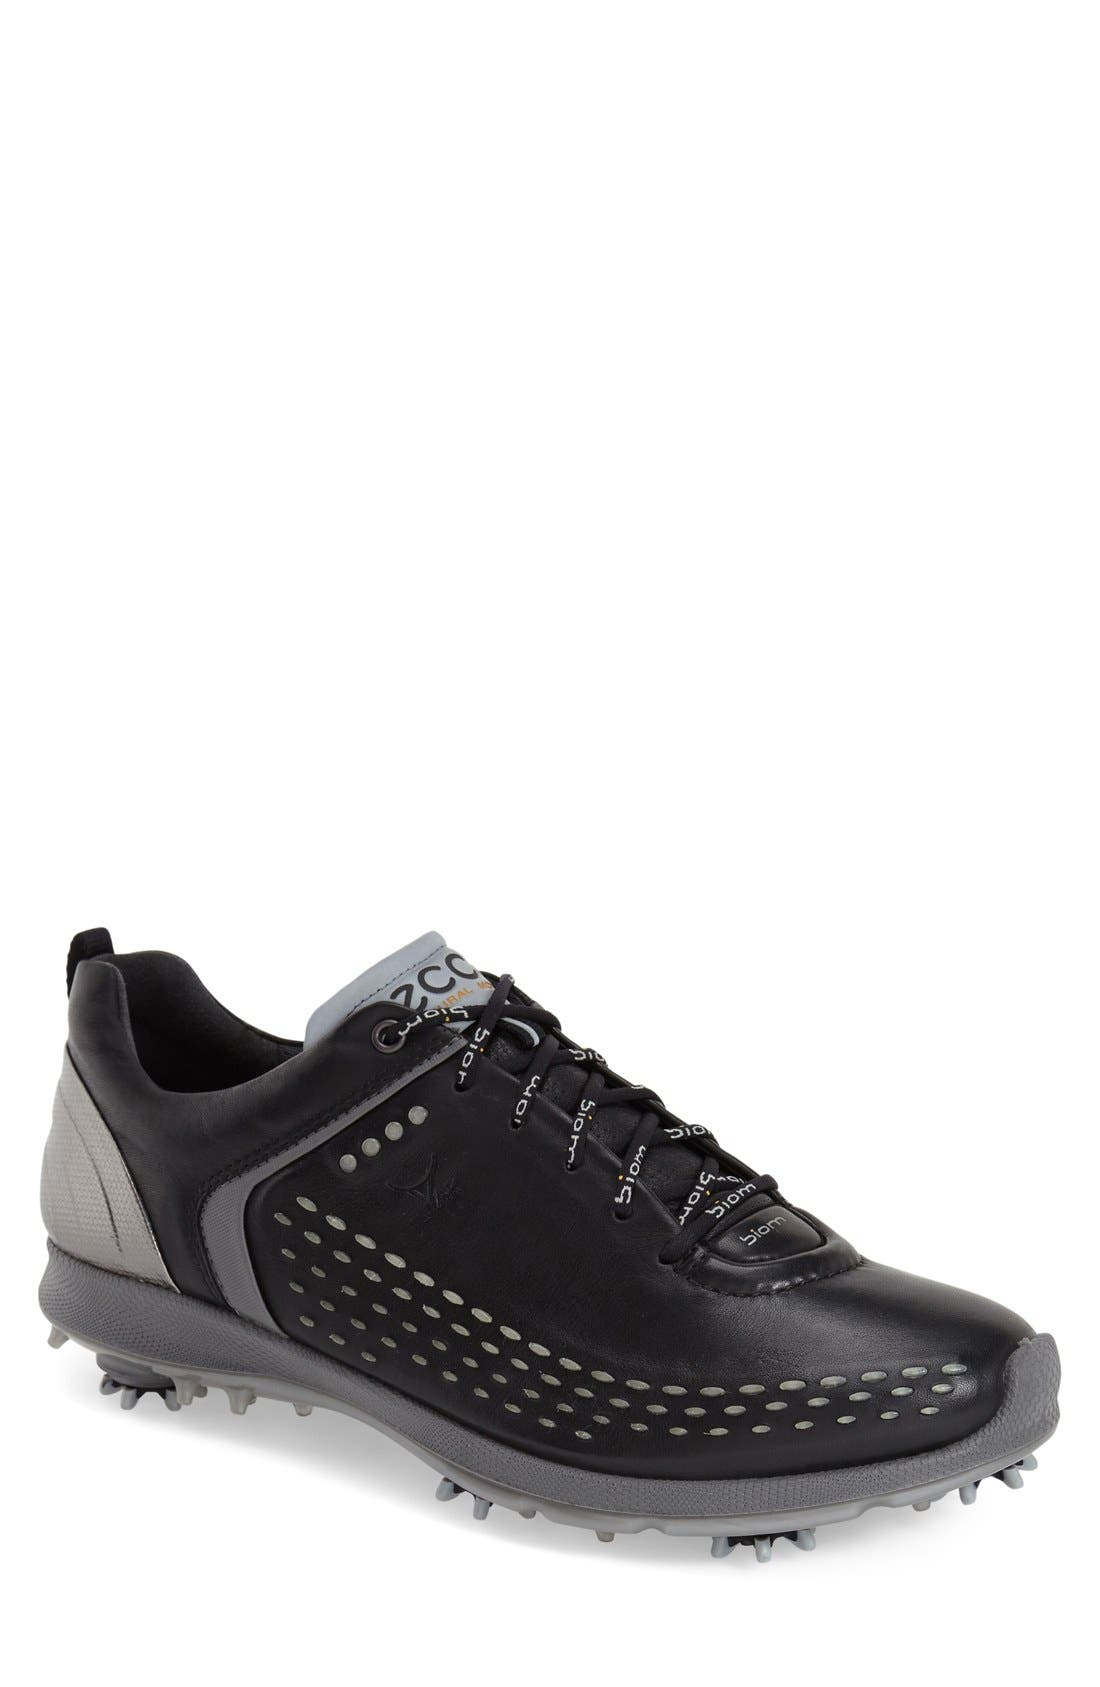 ECCO 'Biom' Hydromax Waterproof Golf Shoe